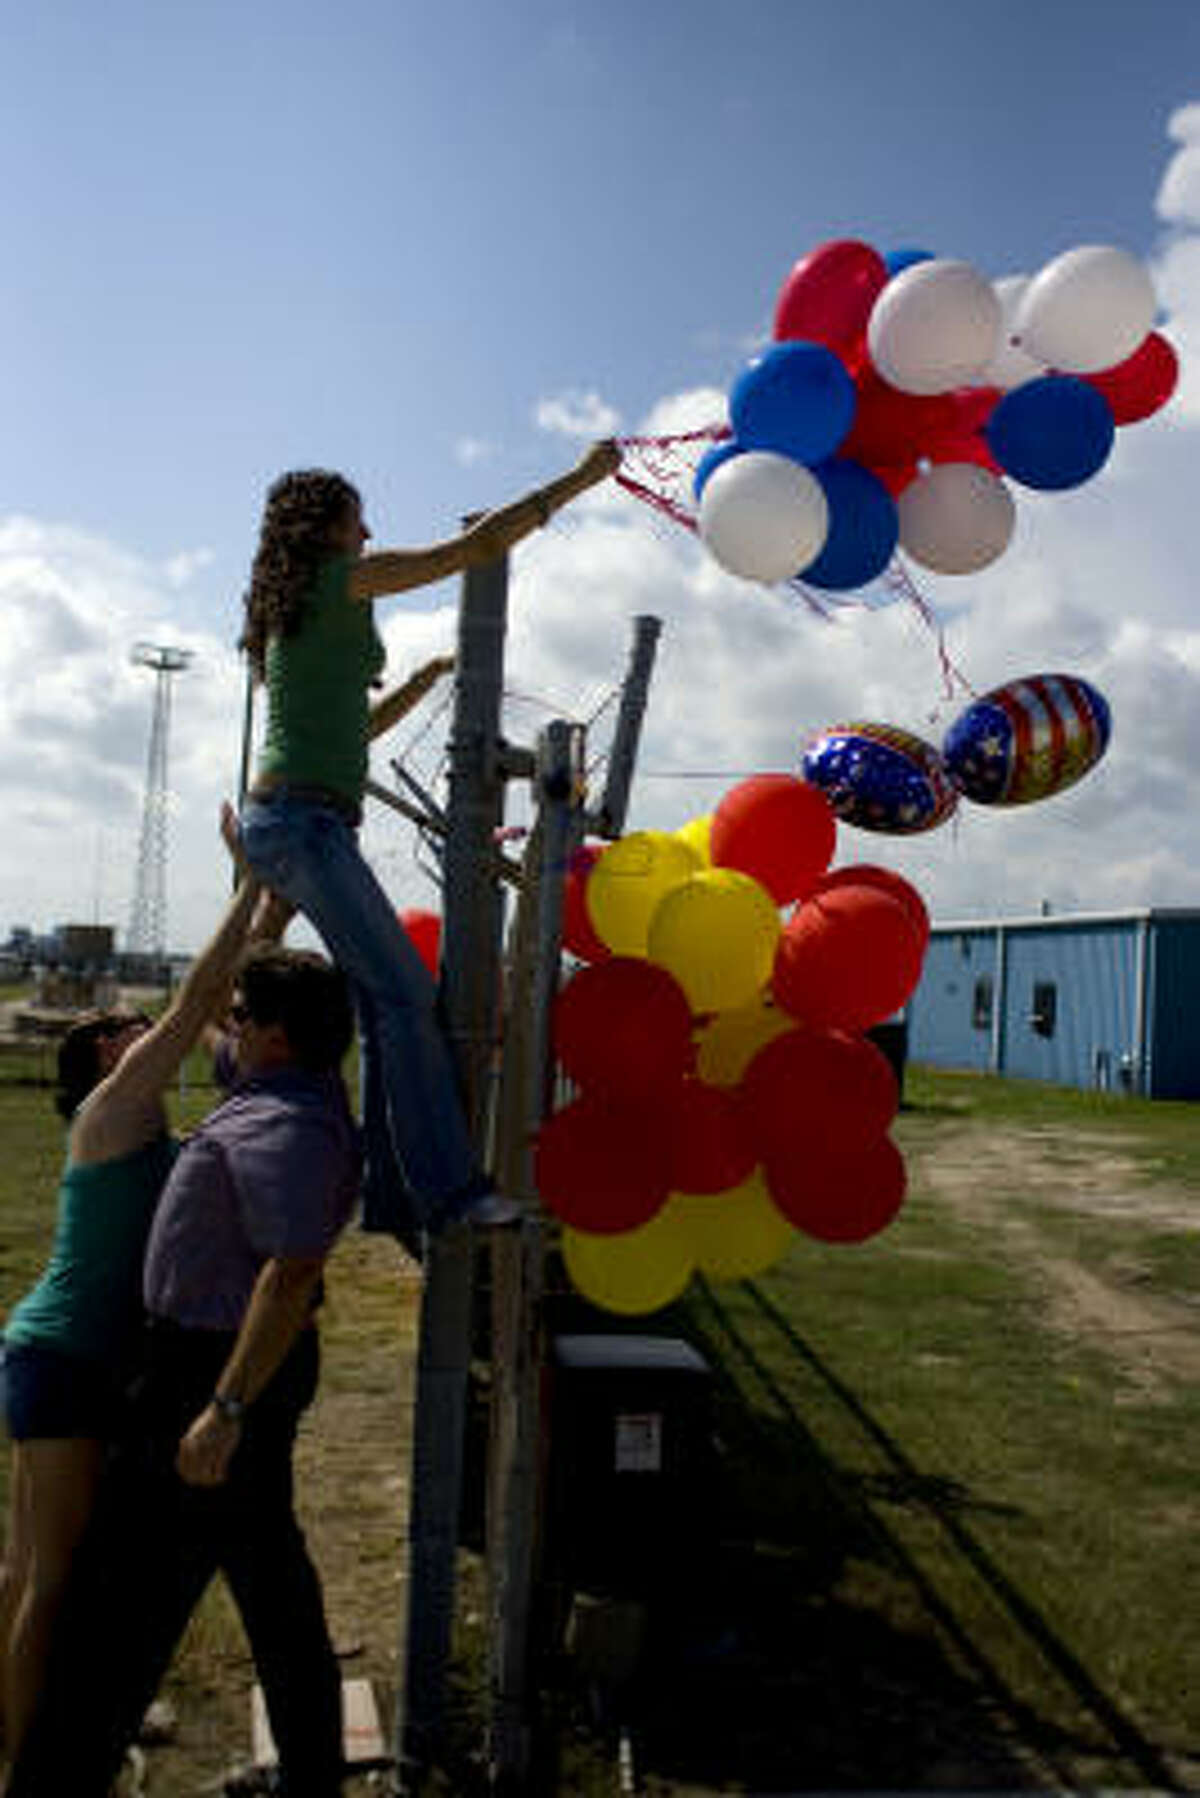 Tabatha Hinote, 22, sister of Marine Donald Hinote, gets A push from her father, Bruce Hinote, and Lois Wampler, the sister of Marine Ryan Wampler, as she hangs balloons on a fence to greet 52 Marines from the 3rd Platoon, Bravo Company, 4th Assault Amphibian Battalion based out of Galveston as they returned home from a six-month deployment in Iraq at the Marine Reserve Training Center Monday.